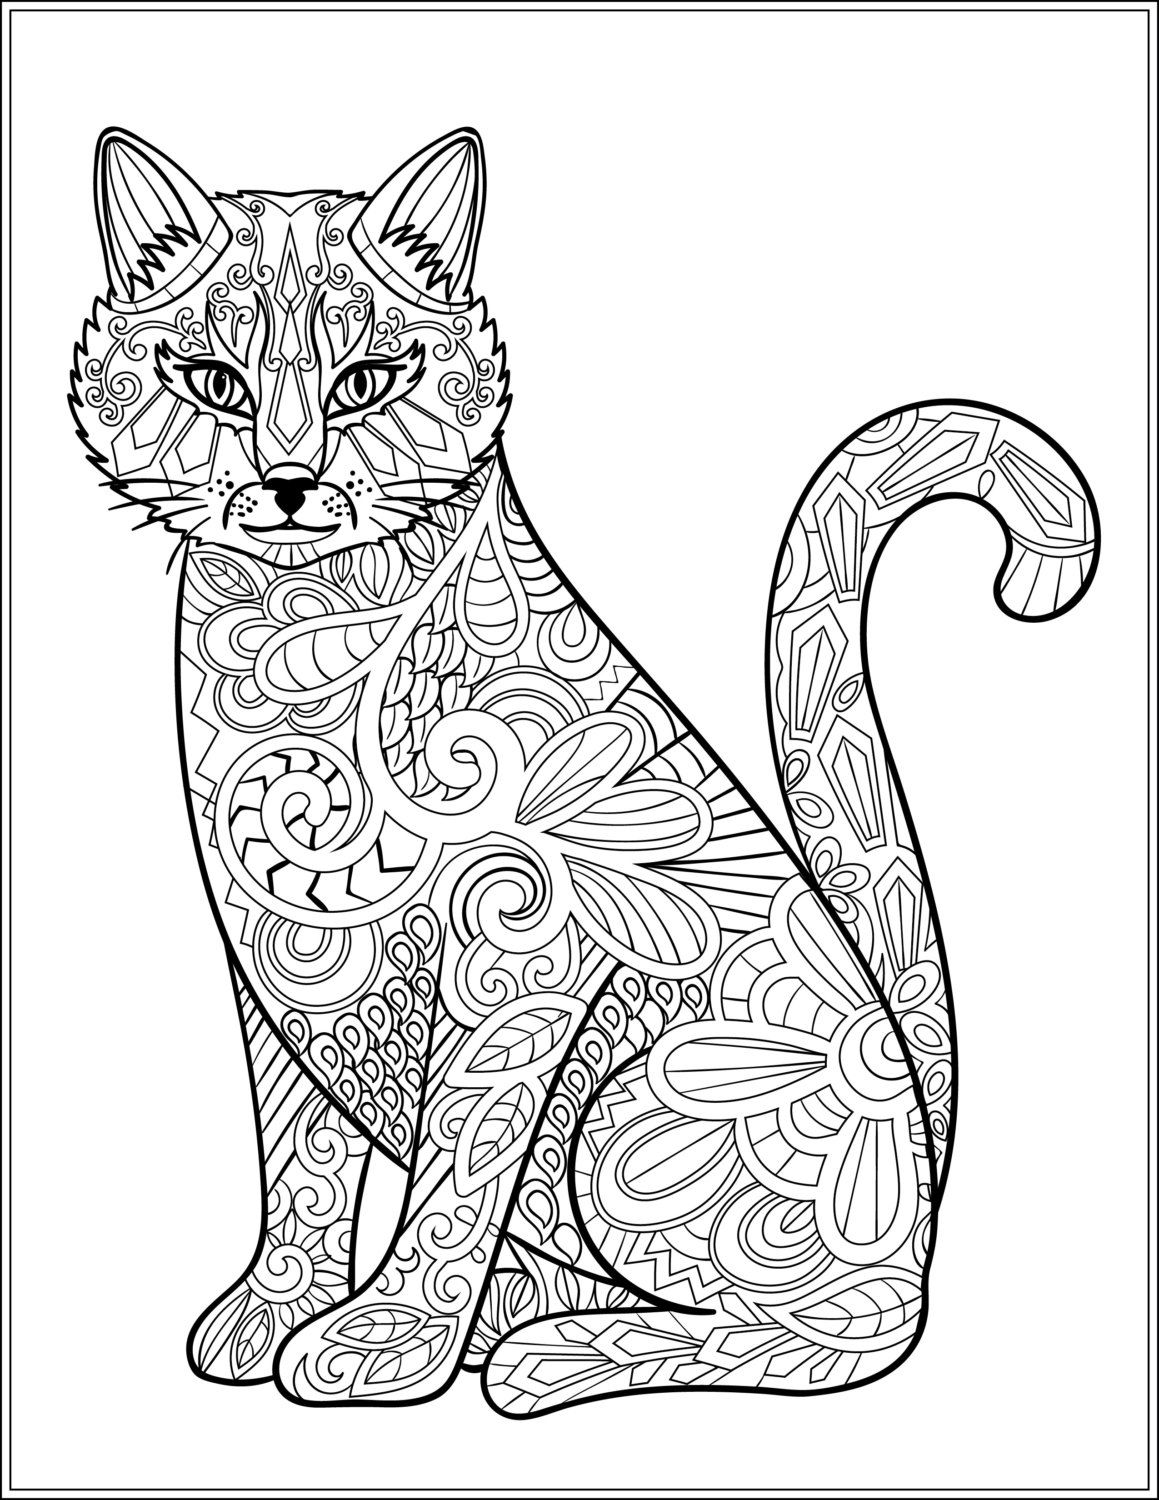 Cat Stress Relieving Designs Patterns Adult Coloring Book Page 6